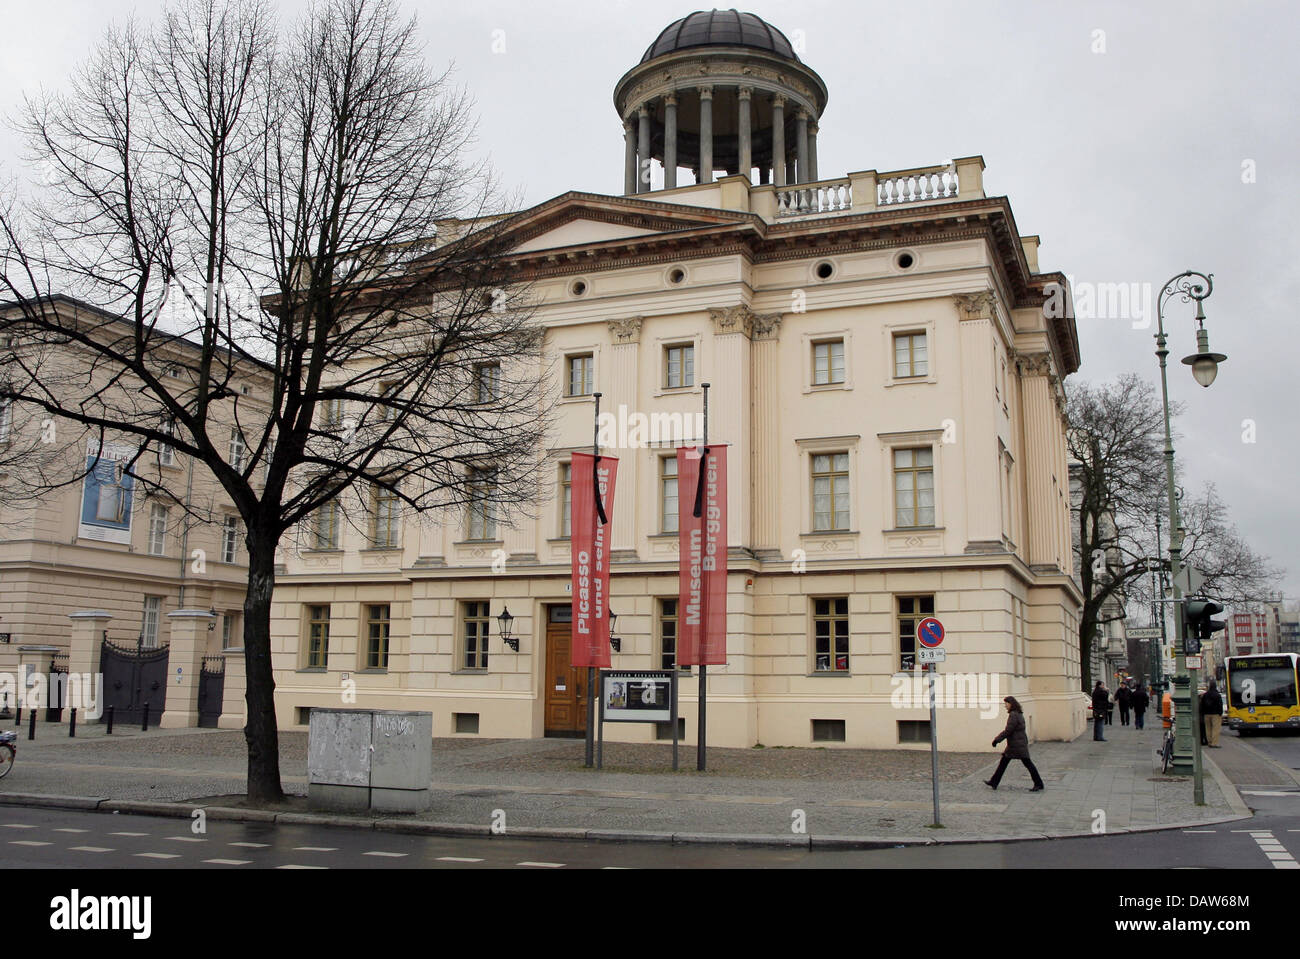 The picture shows the Berggruen museum in Berlin, Germany